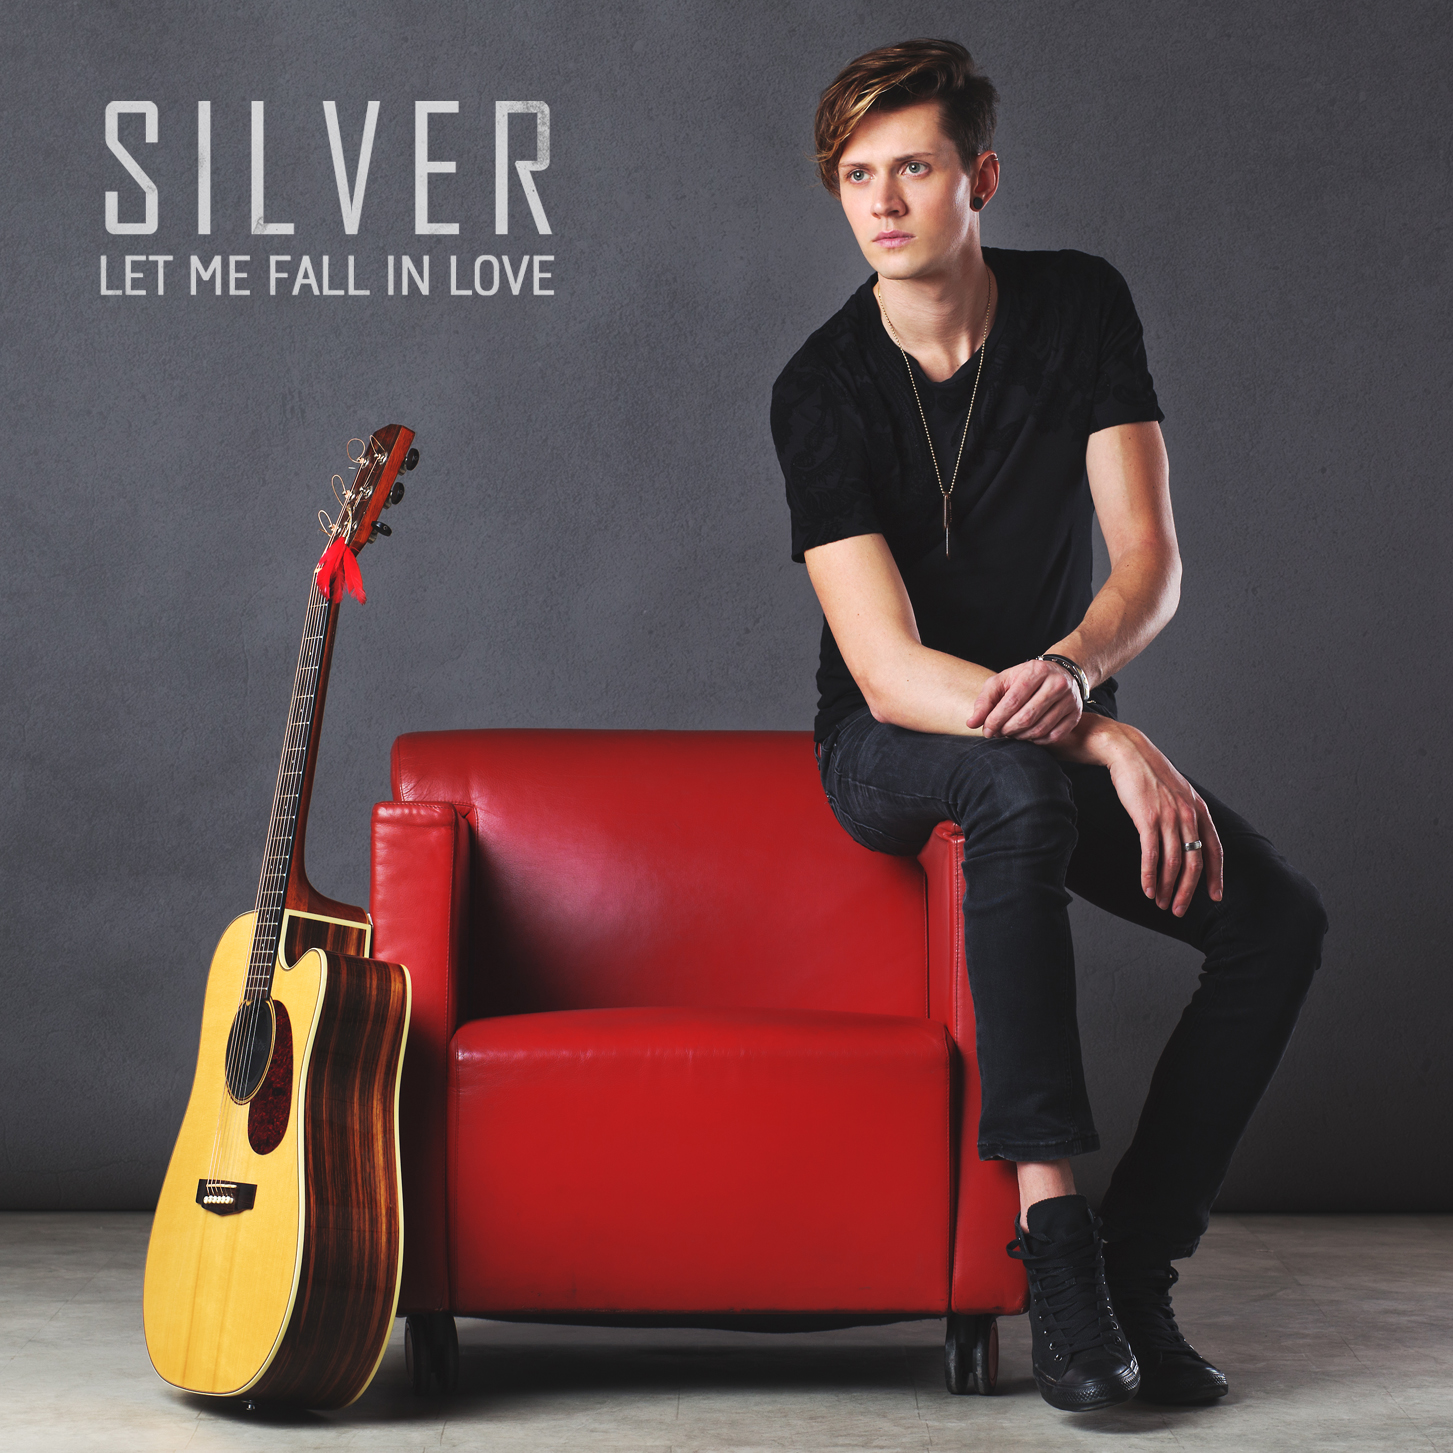 Cover: Let me fall in love - SILVER